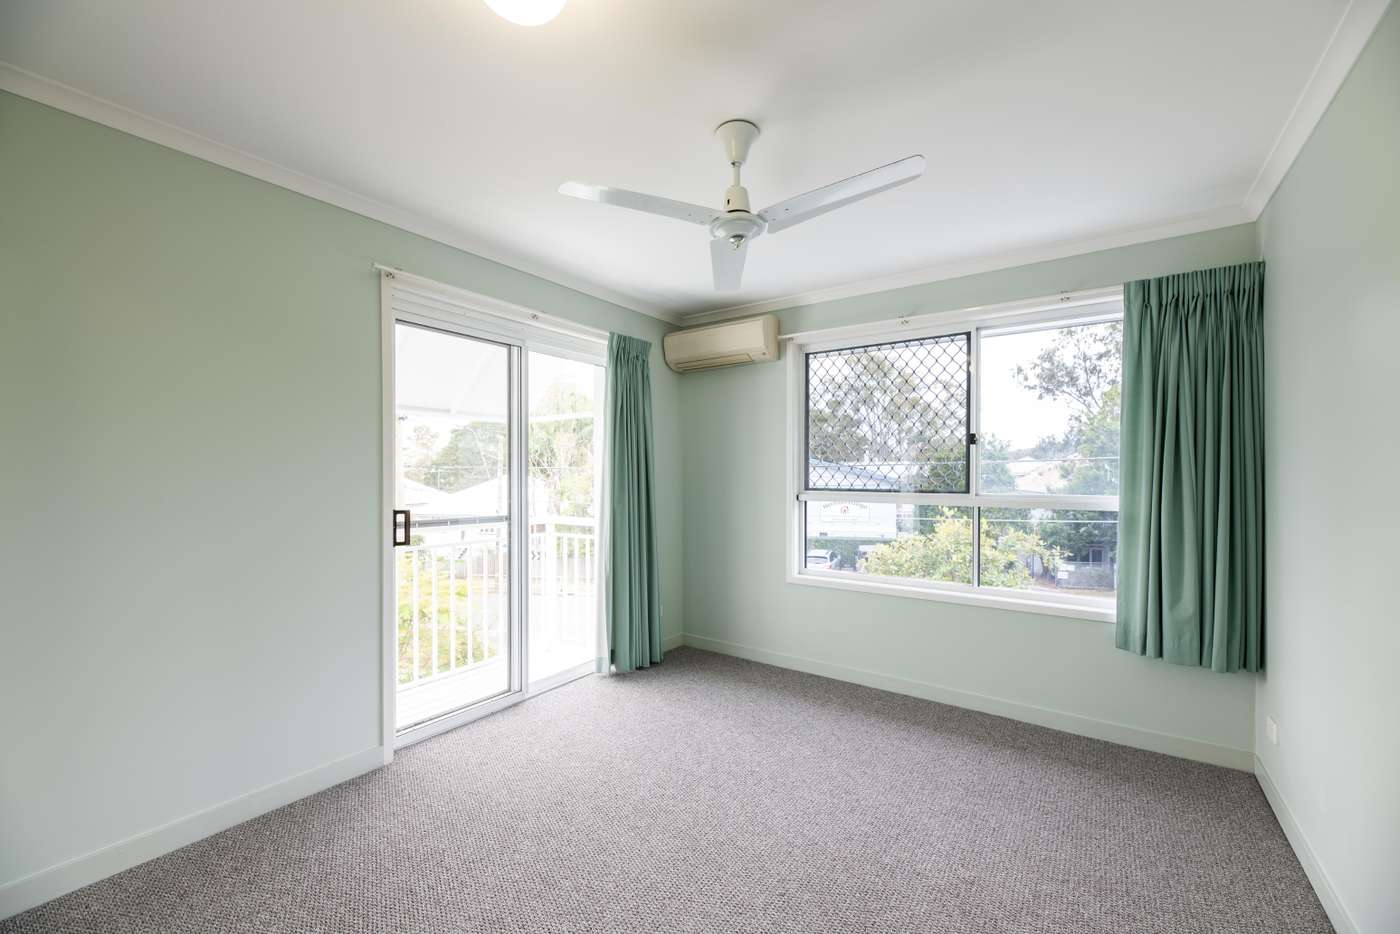 Sixth view of Homely townhouse listing, 2/2 Hetherington Street, Herston QLD 4006